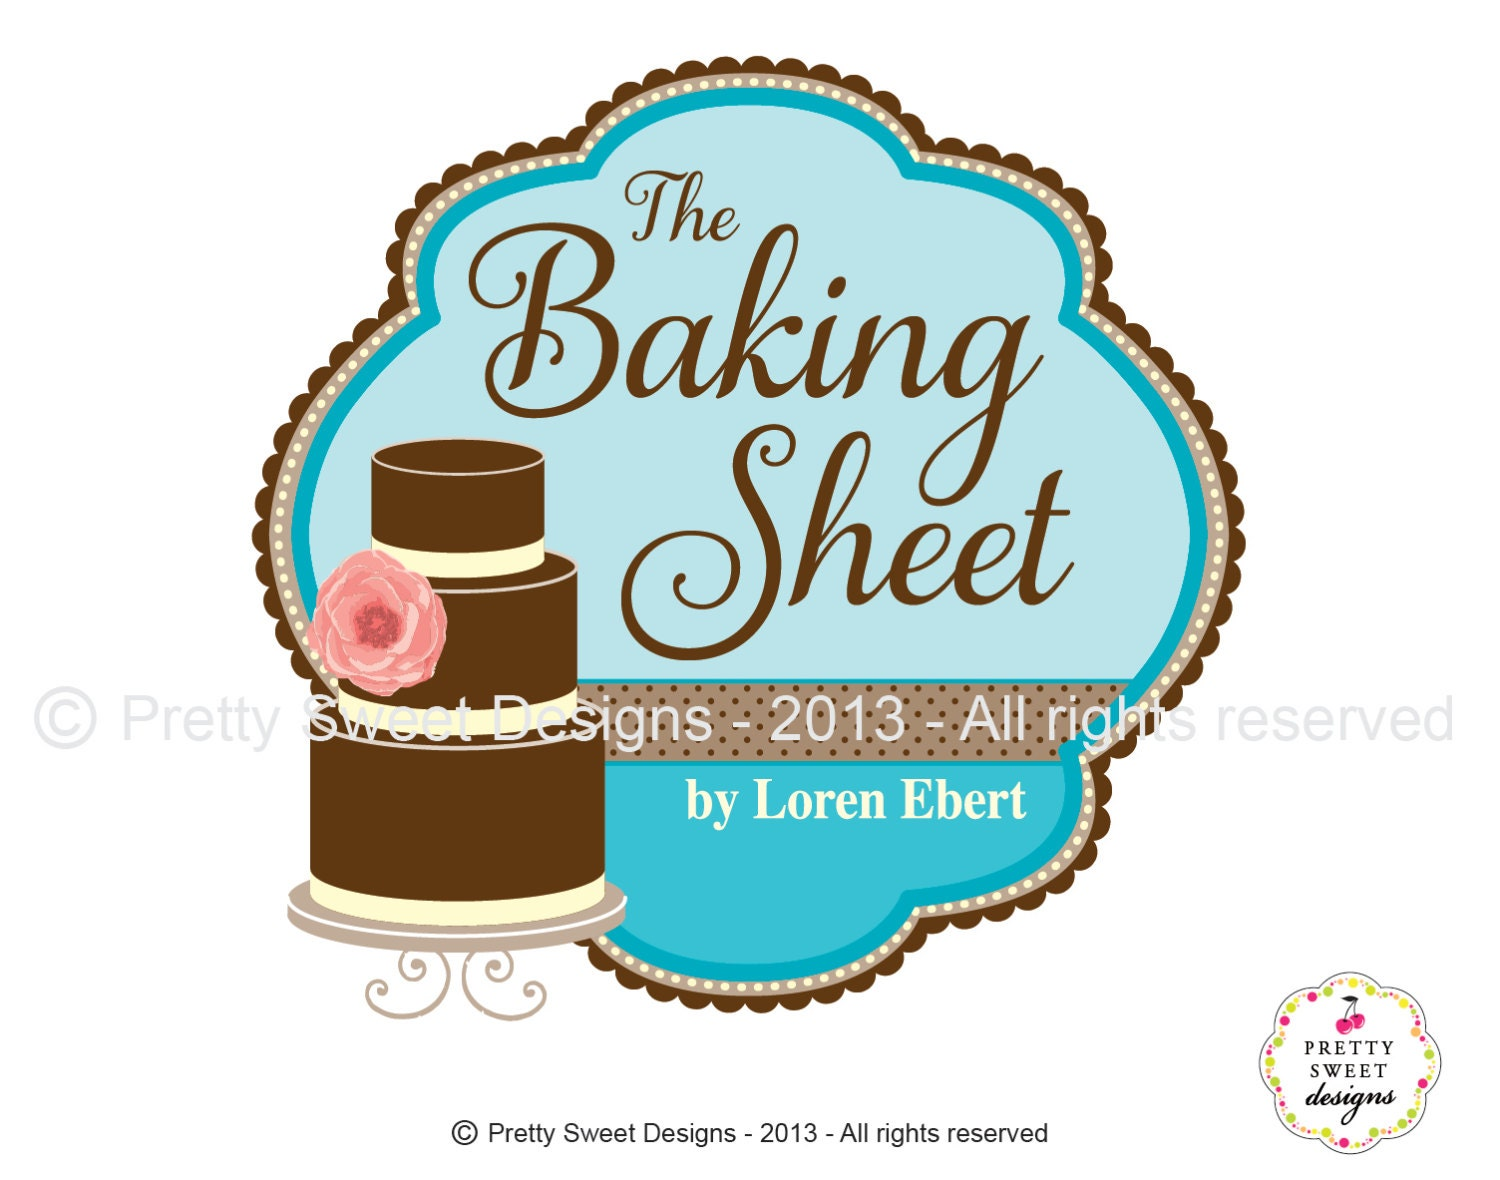 Cake Logo Design For Bakery Or Wedding by MyPrettySweetDesigns